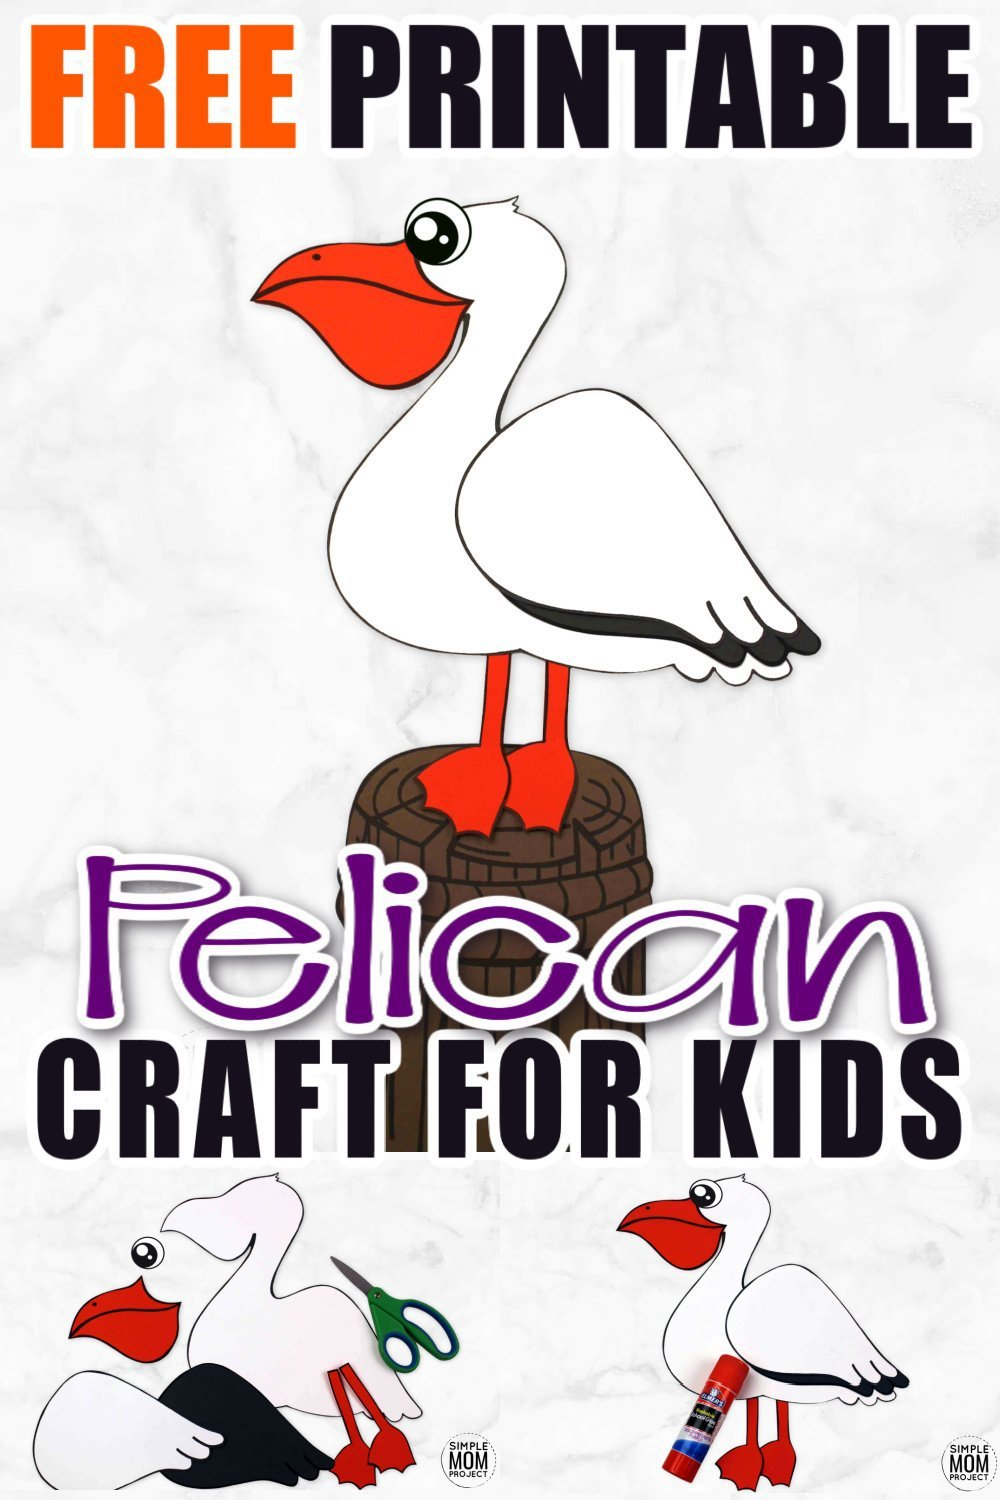 This easy and fun pelican craft is a perfect ocean theme paper art project for your preschool kids and toddlers. Use the free printable pelican template and make this adorable ocean animal now! #pelicancraft #oceananimals #oceananimalcrafts #SimpleMomProject